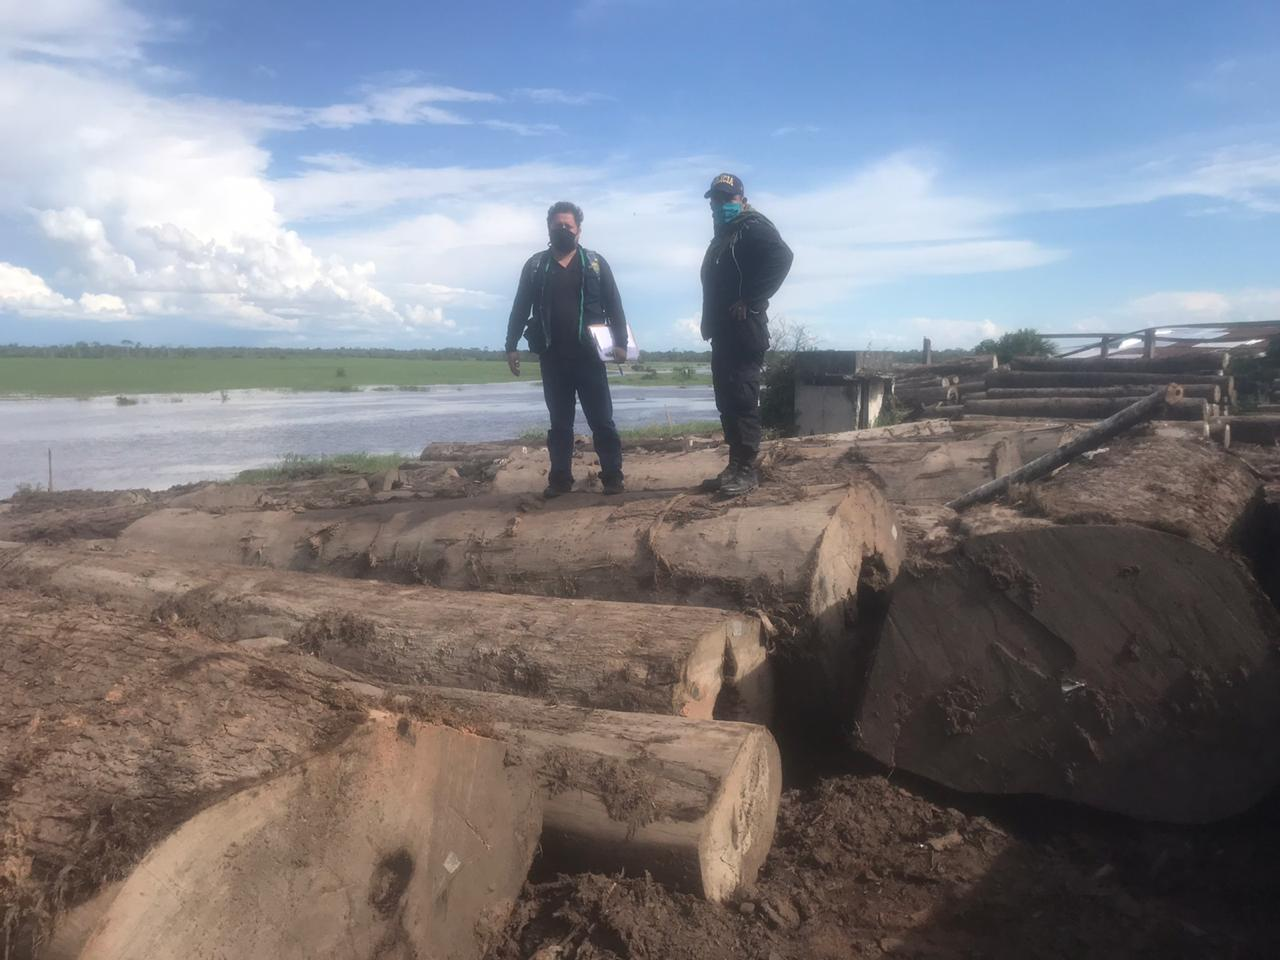 192 m3 of Marupa, Cachimbo, and Tornillo logs seized at sawmill in Pucallpa